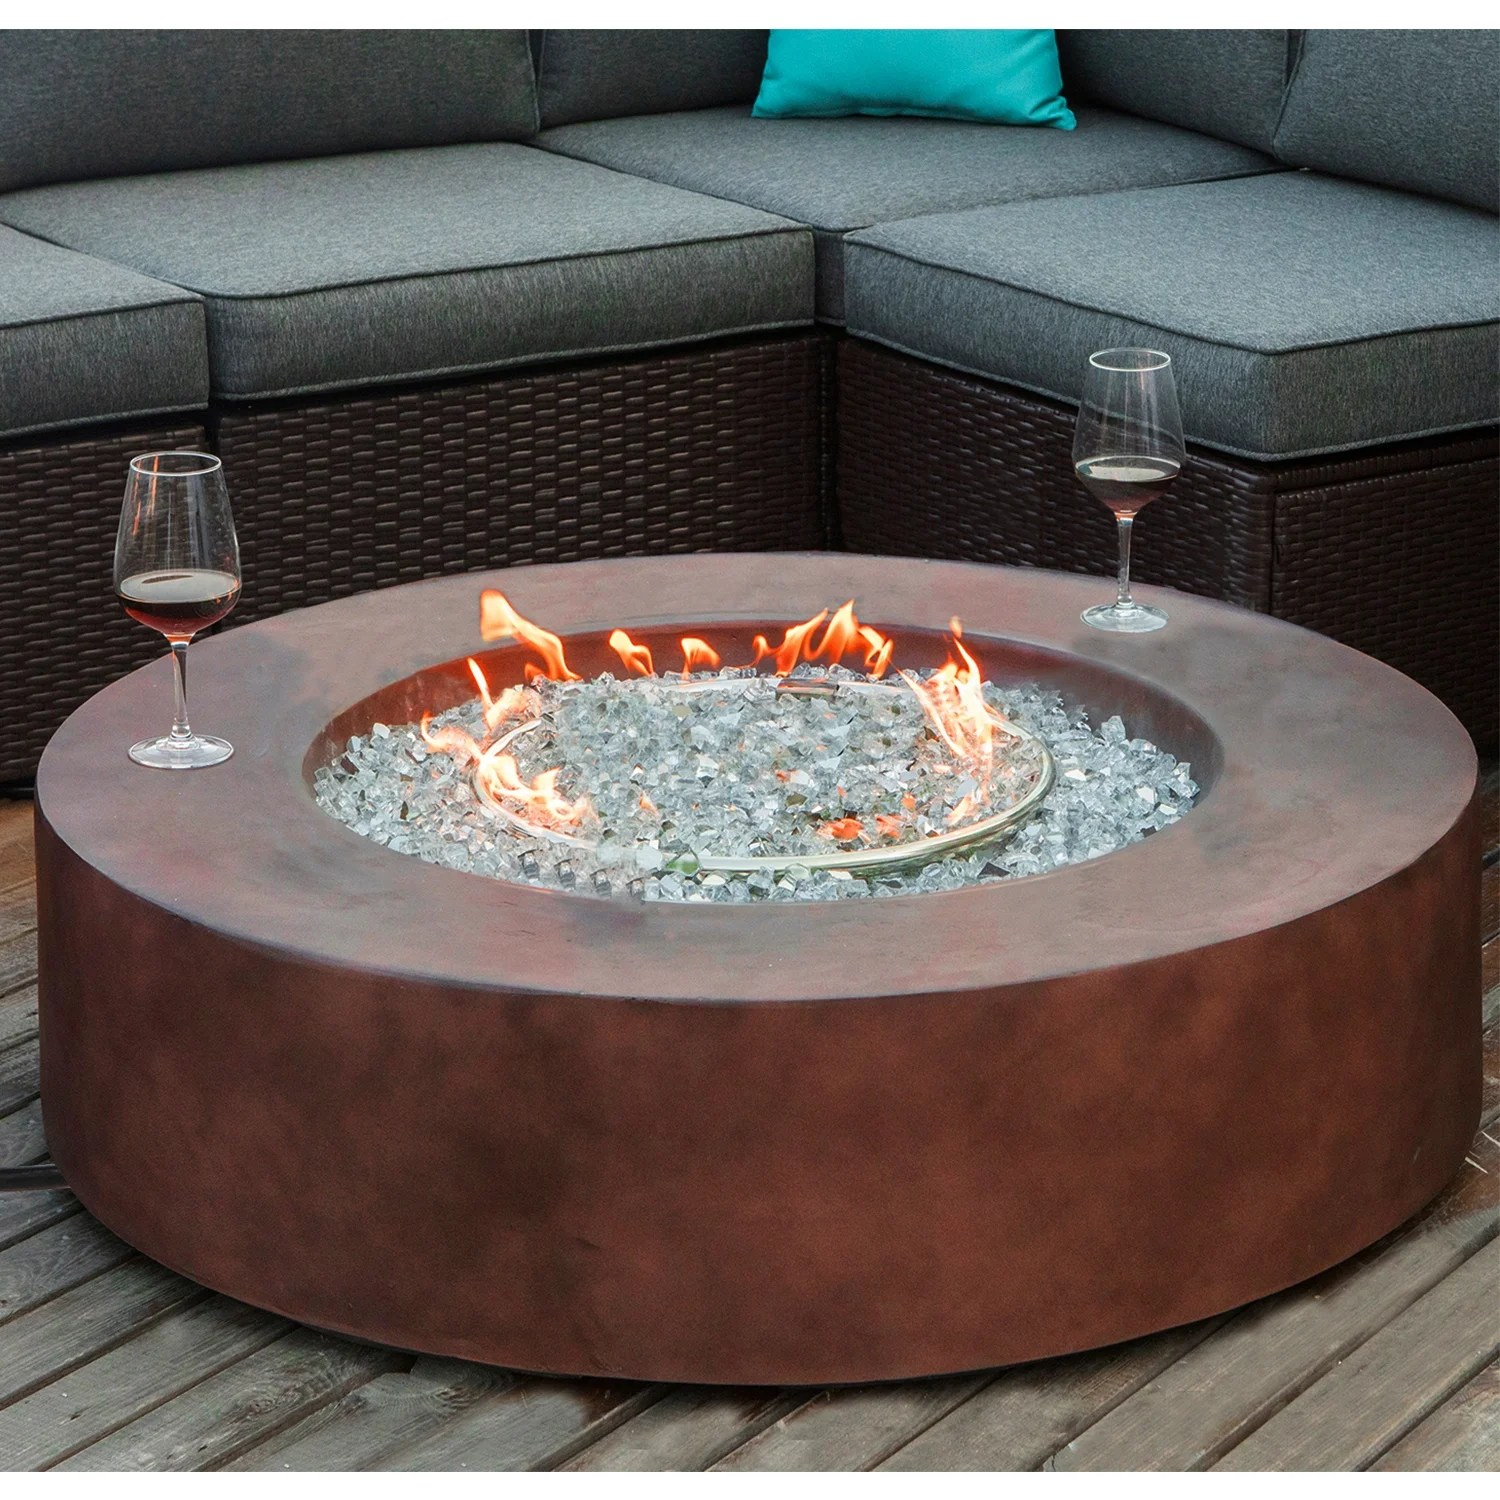 Cosiest Outdoor Propane Fire Pit Coffee Table With Round Base Overstock 31500538